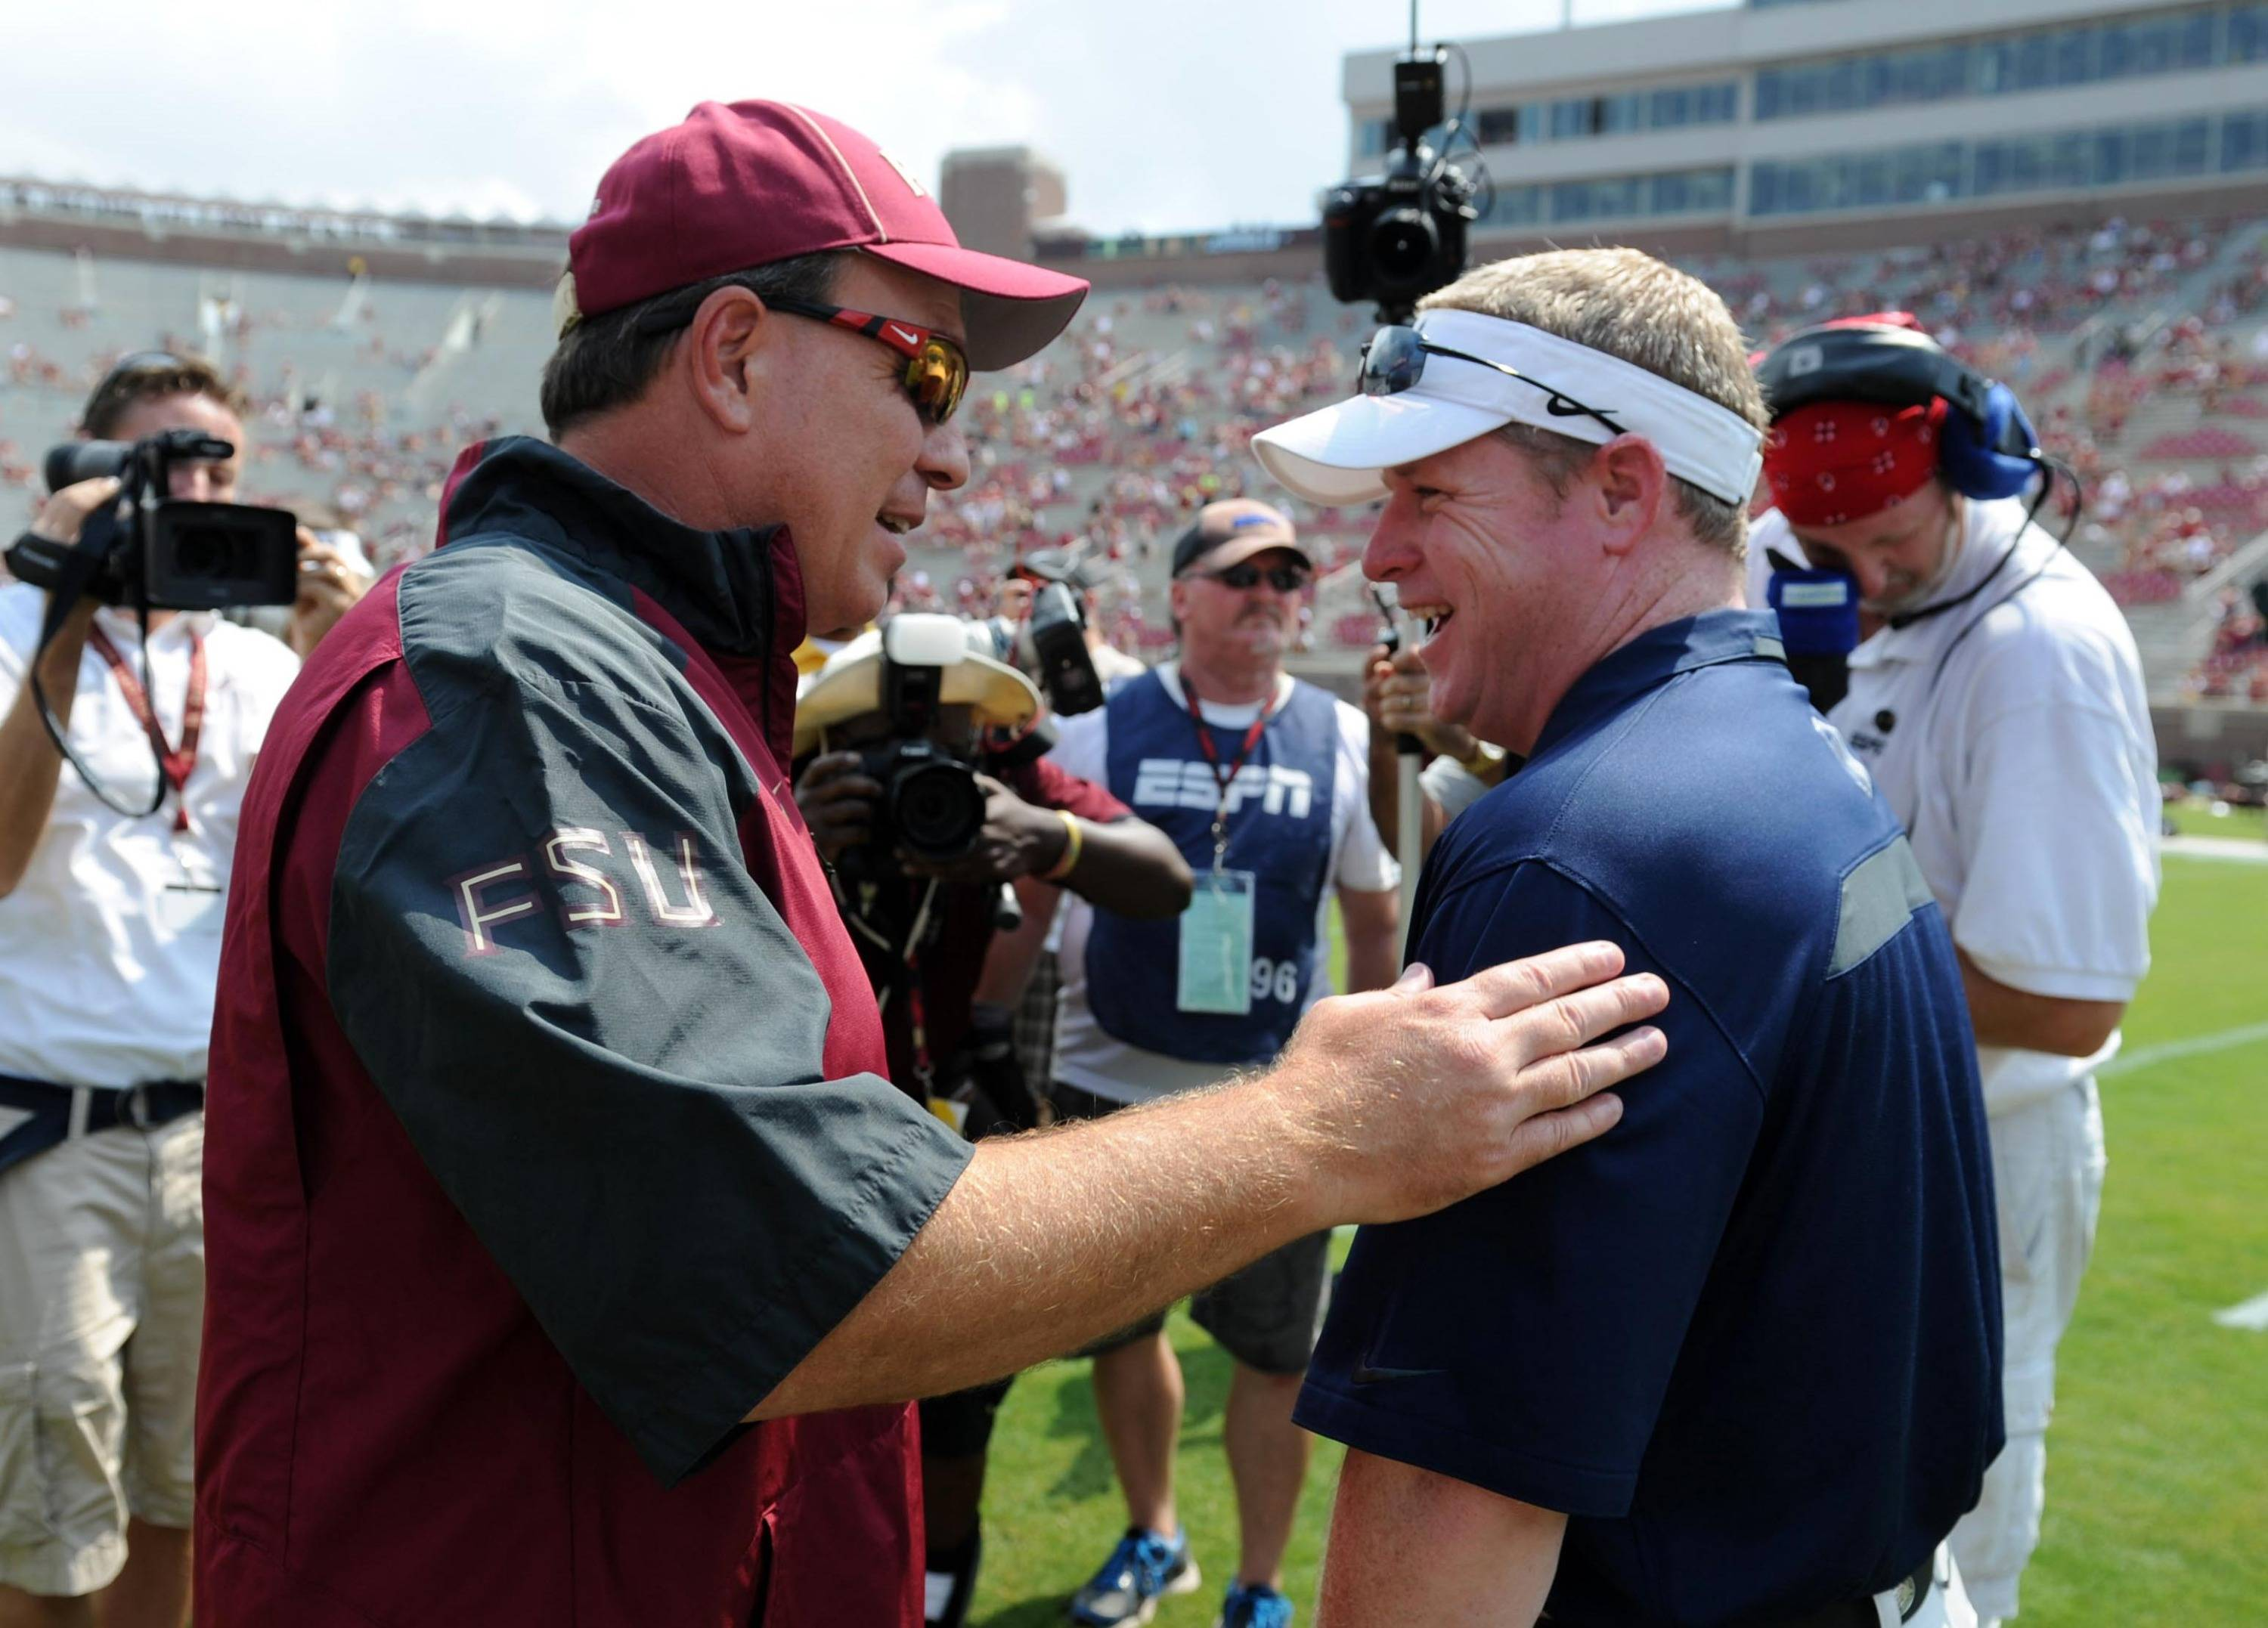 Sep 14, 2013; Tallahassee, FL, USA; Florida State Seminoles head coach Jimbo Fisher greets Nevada Wolf Pack head coach Brian Polian before the game at Doak Campbell Stadium. Mandatory Credit: Melina Vastola-USA TODAY Sports